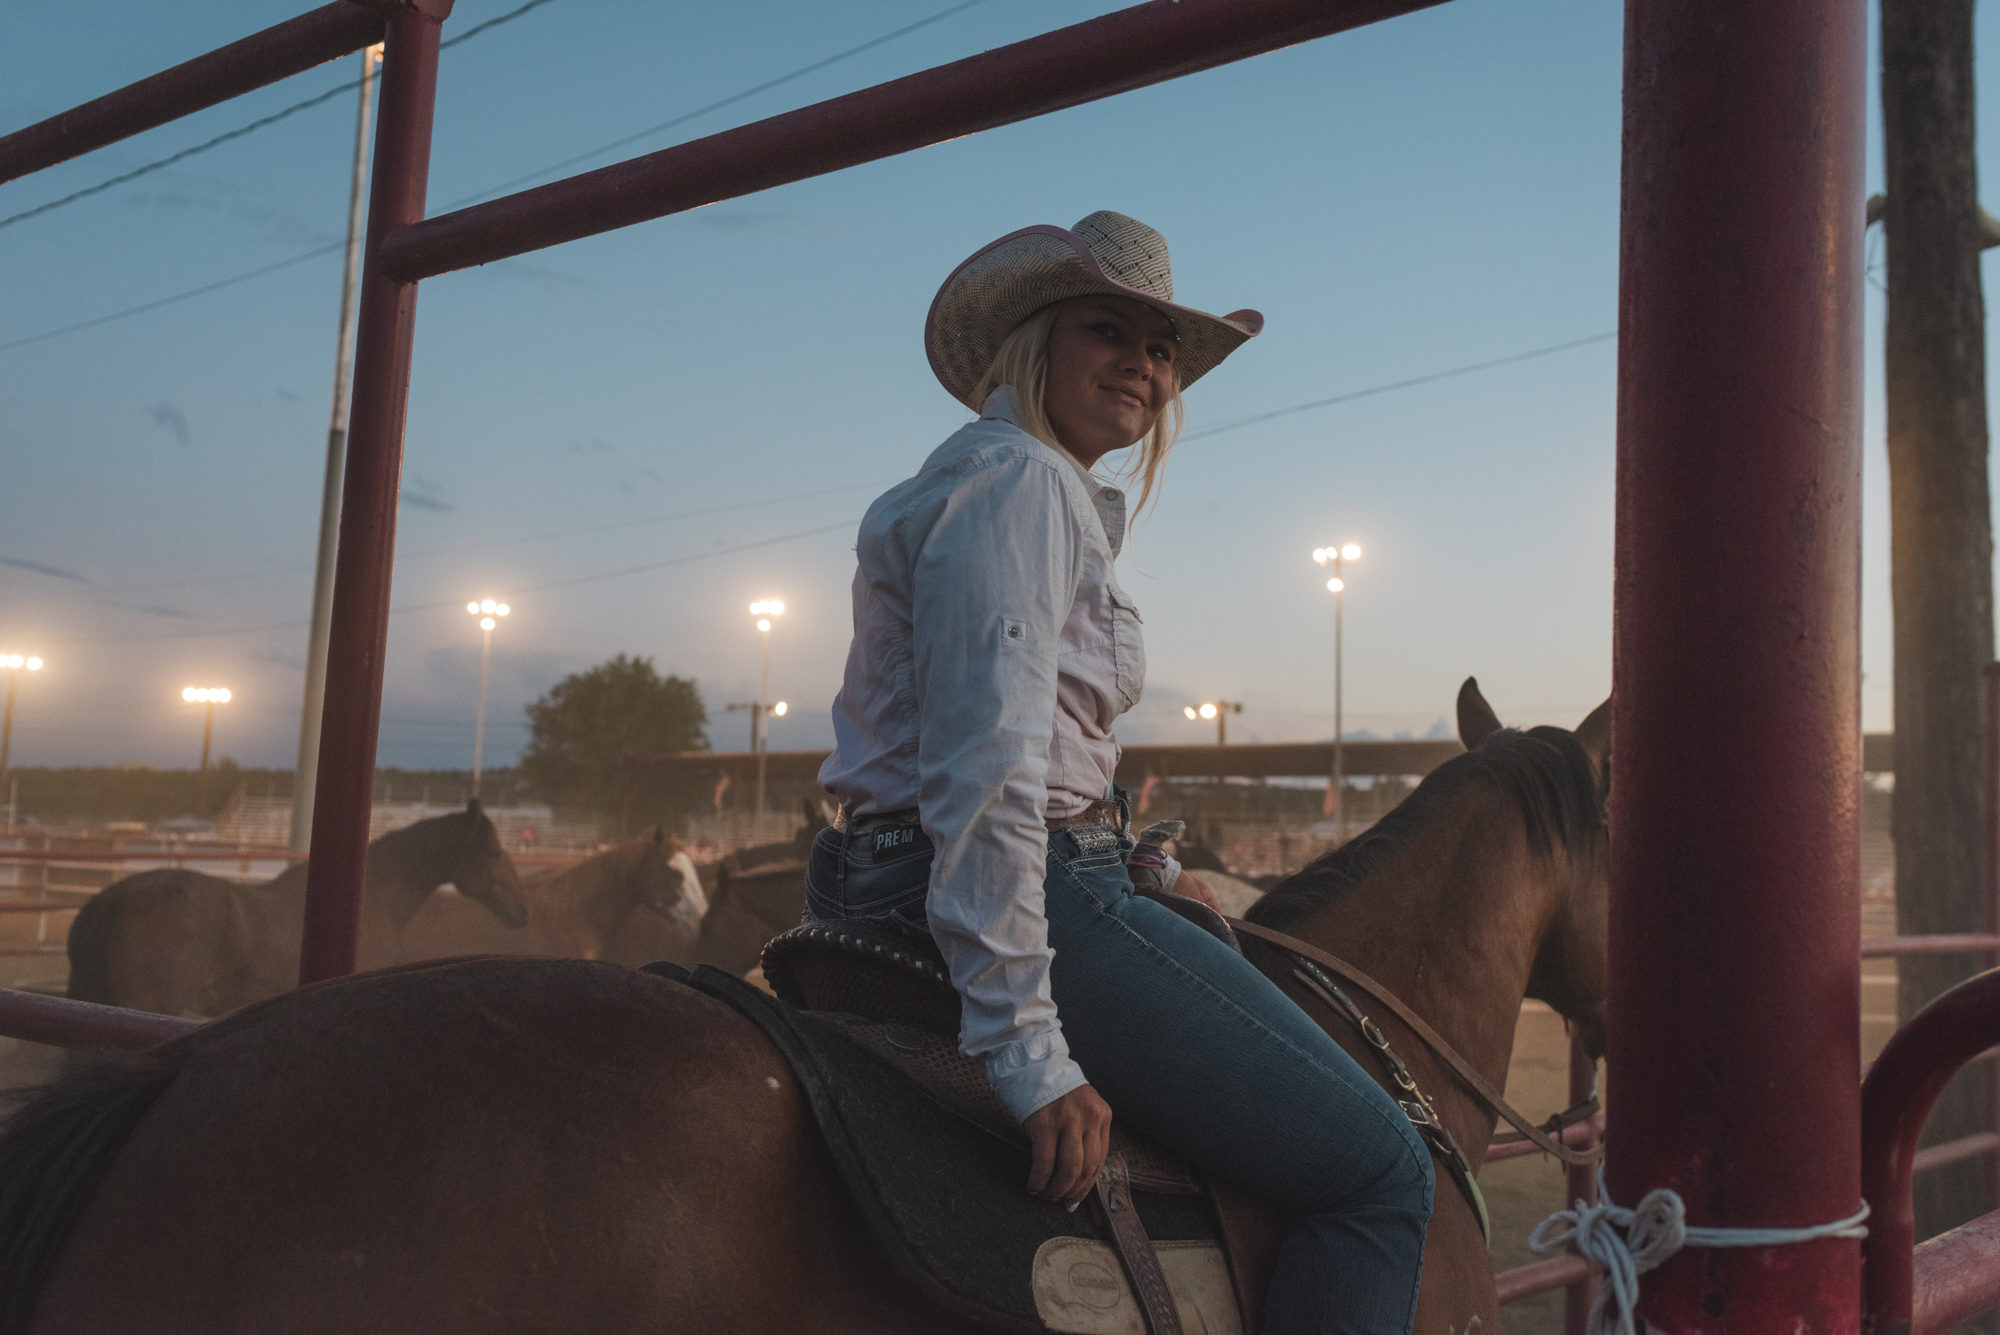 Rodeo_selects-2280.jpg